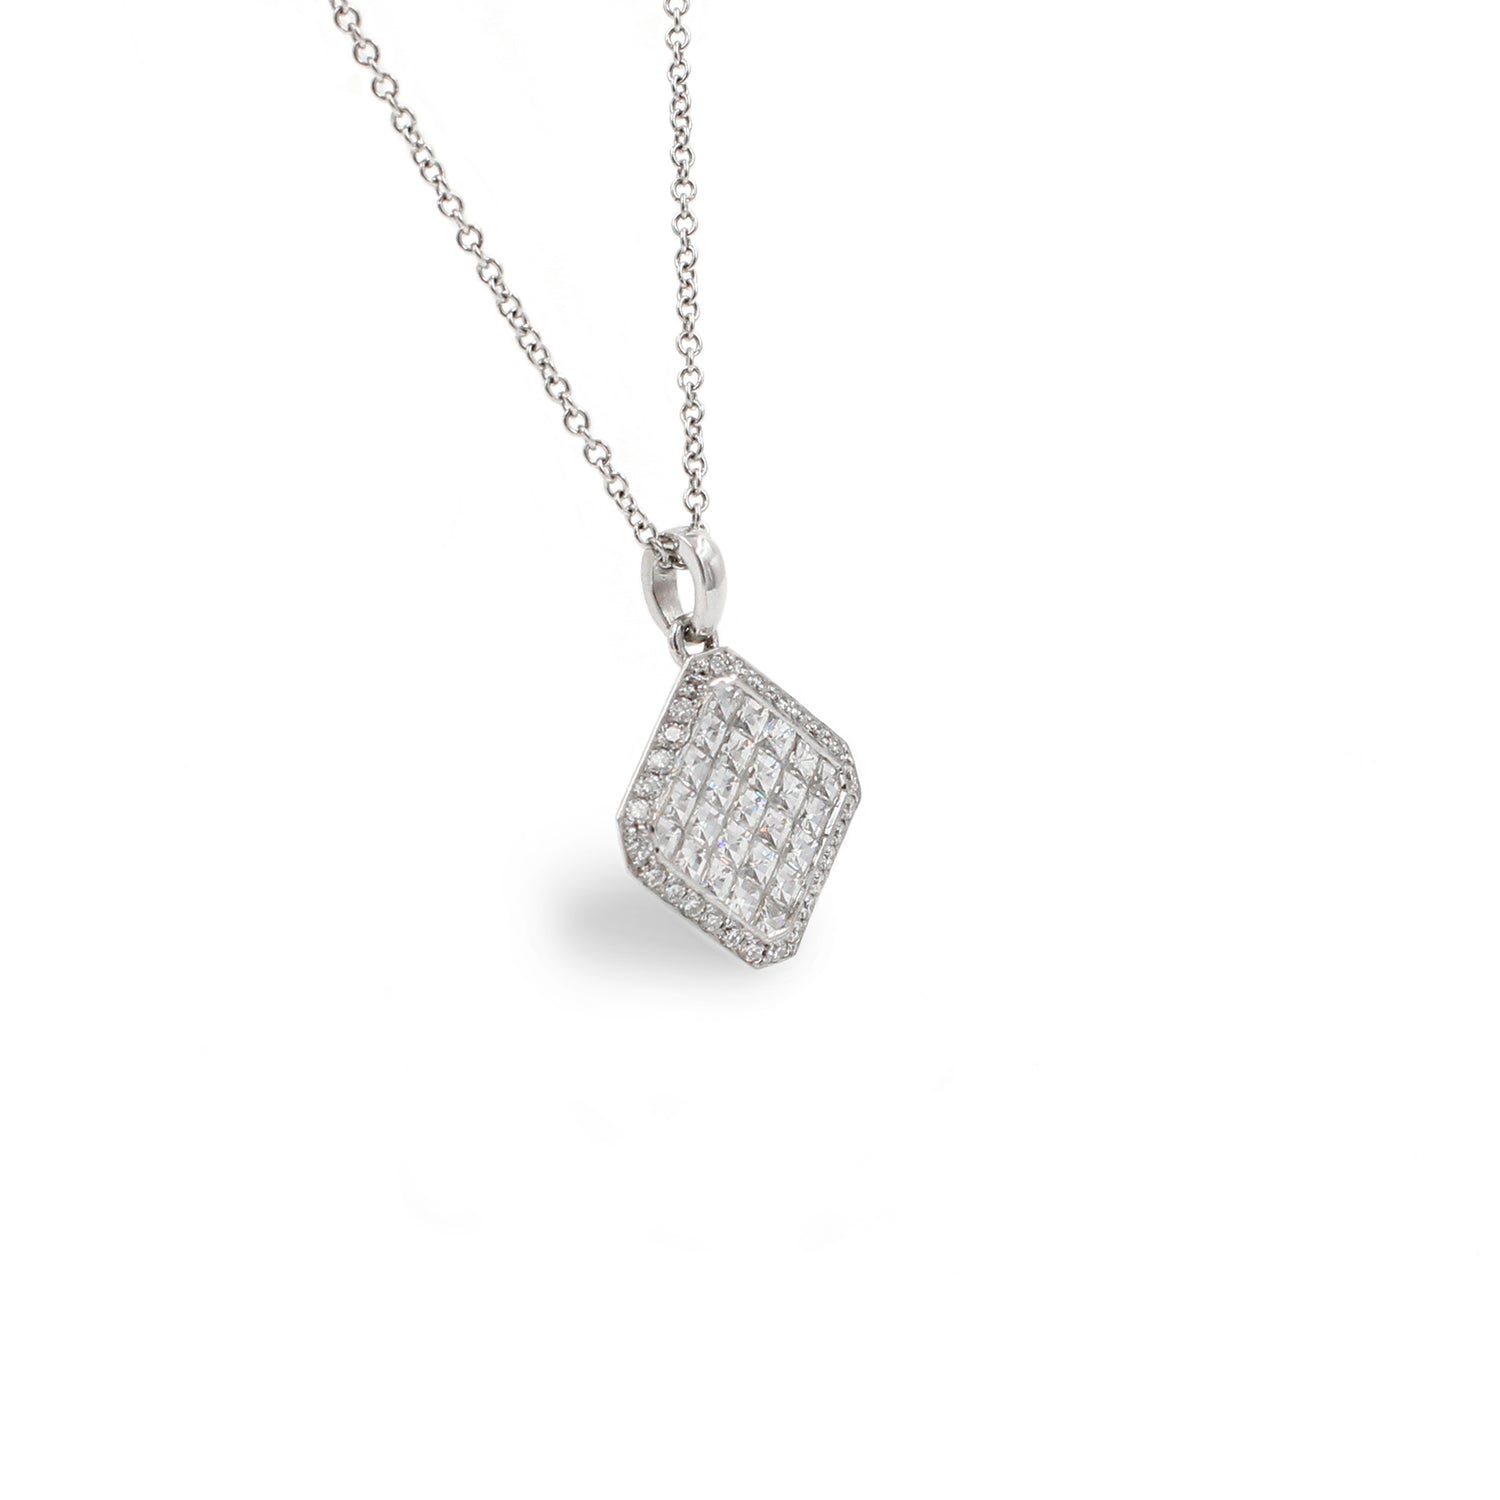 Fine Jewelry Collection: Large Asscher Shaped Diamond Pendant Necklace